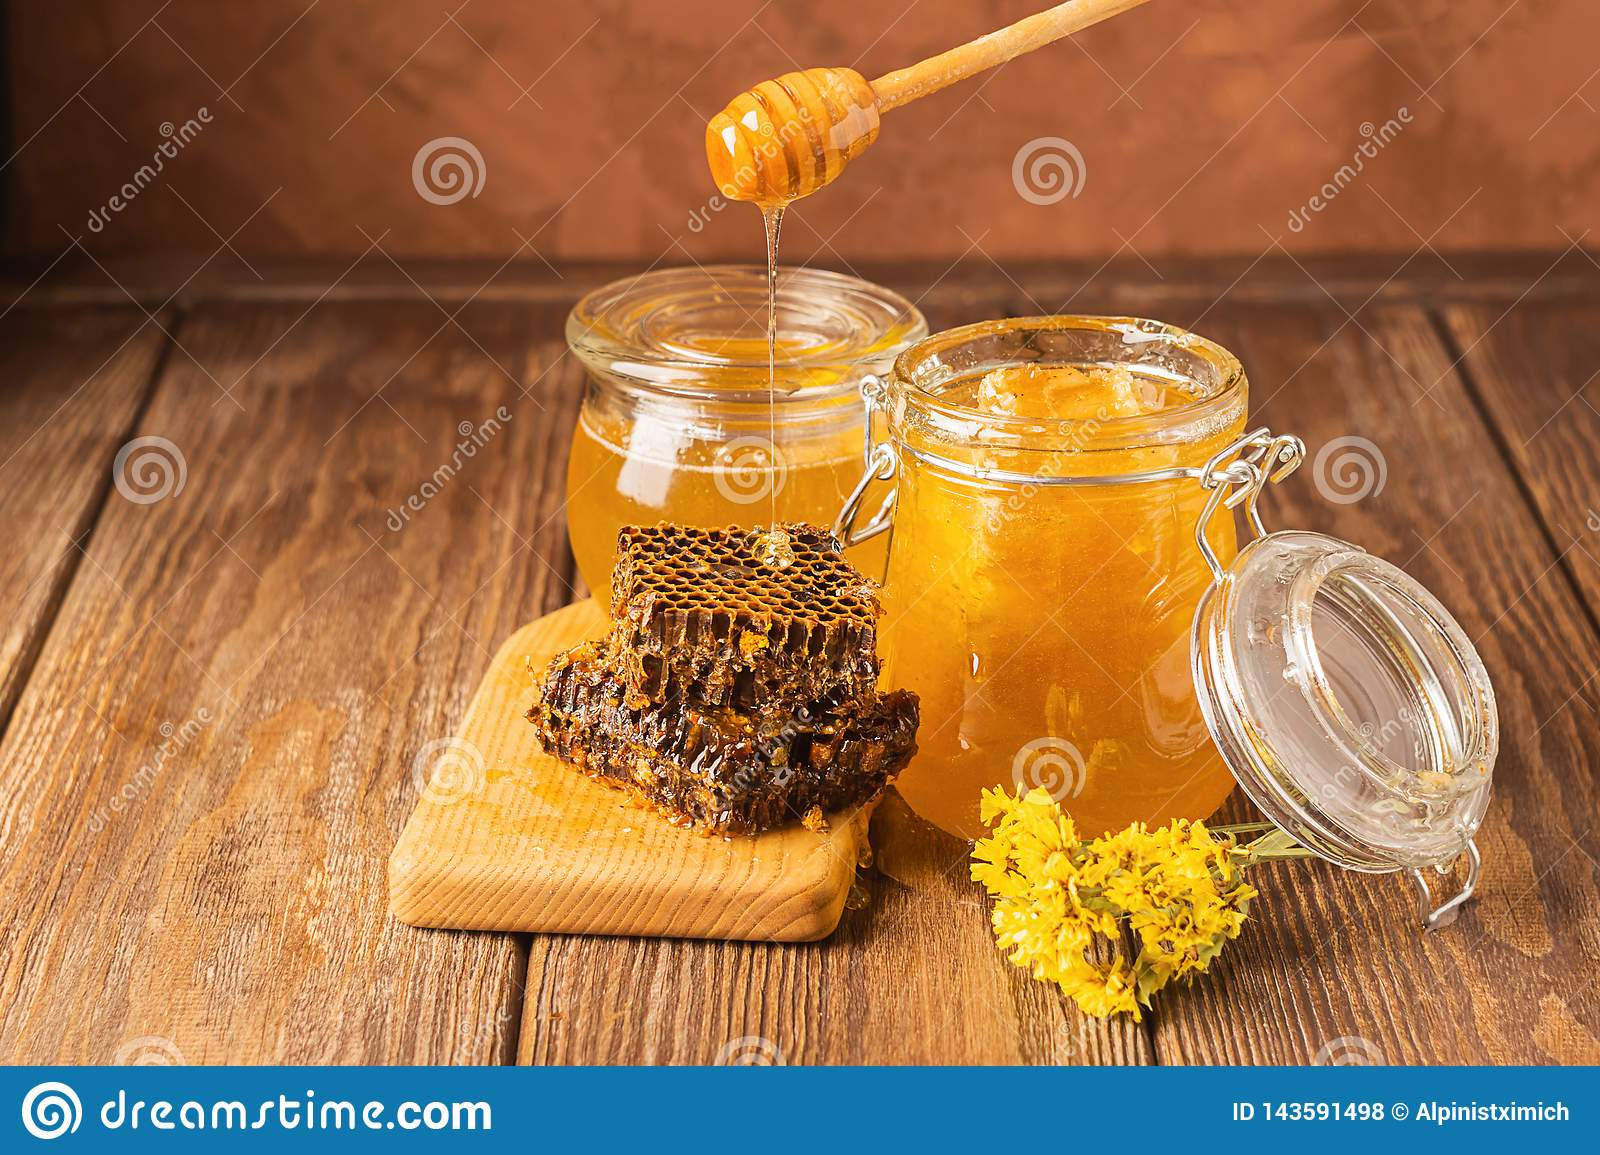 Fresh golden honey flows from a wooden spoon into a jar. Bee aromatic honey on a wooden background on the table.